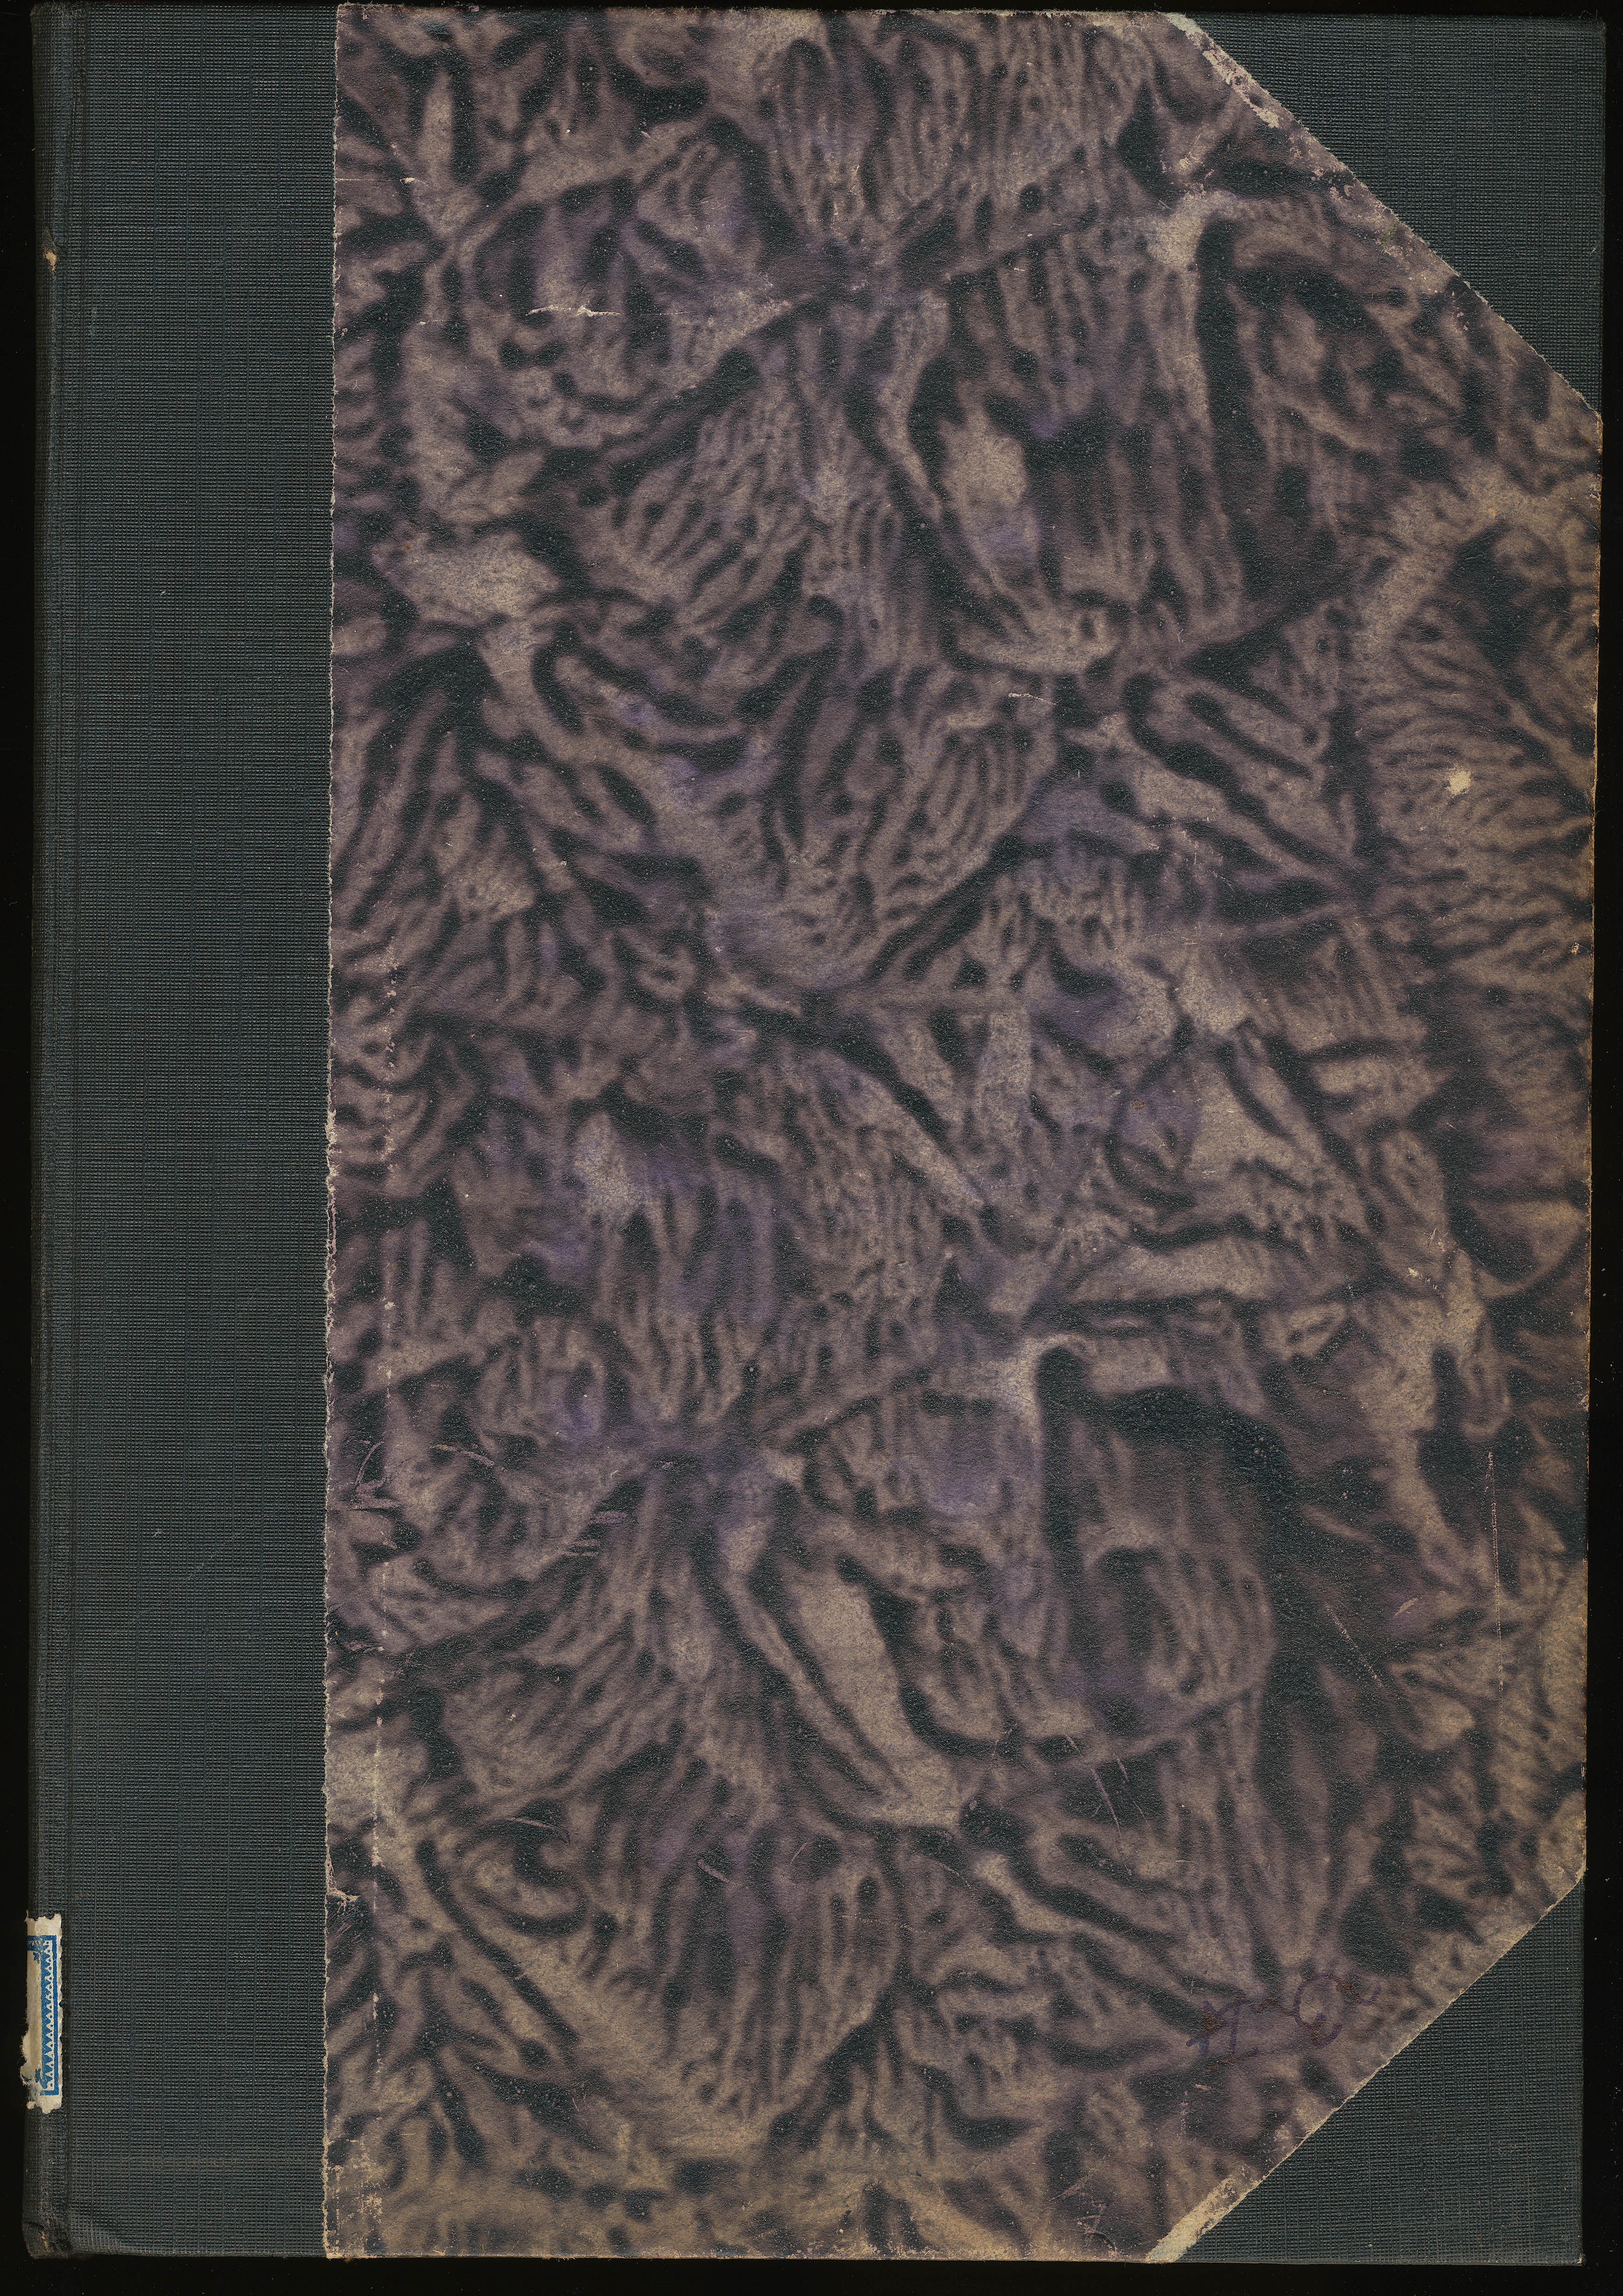 five hq vintage book paper and leather cover texture